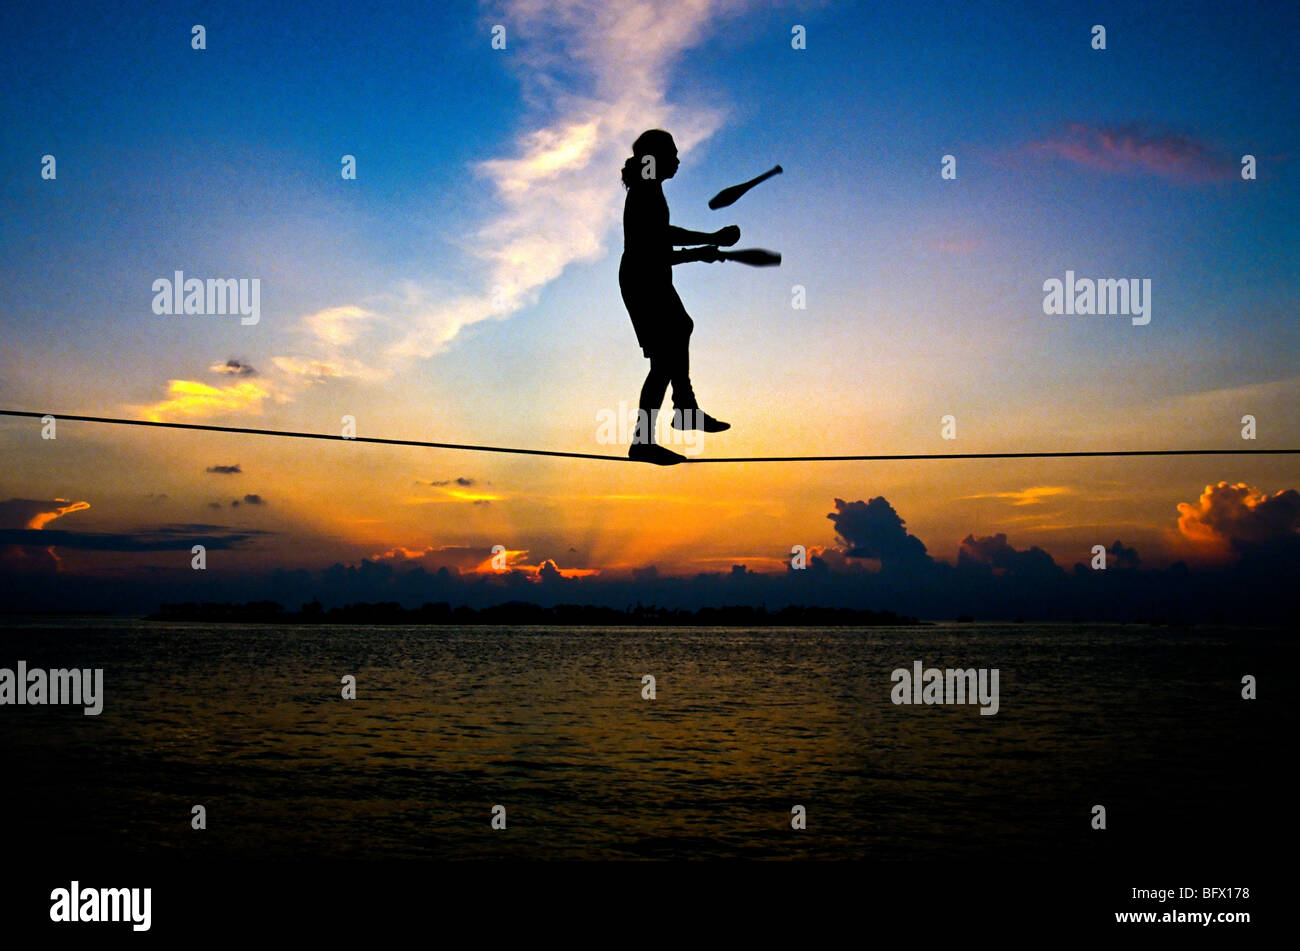 A tightrope walker performs during the sunset celebration at Mallory Square in Key West Florida. - Stock Image